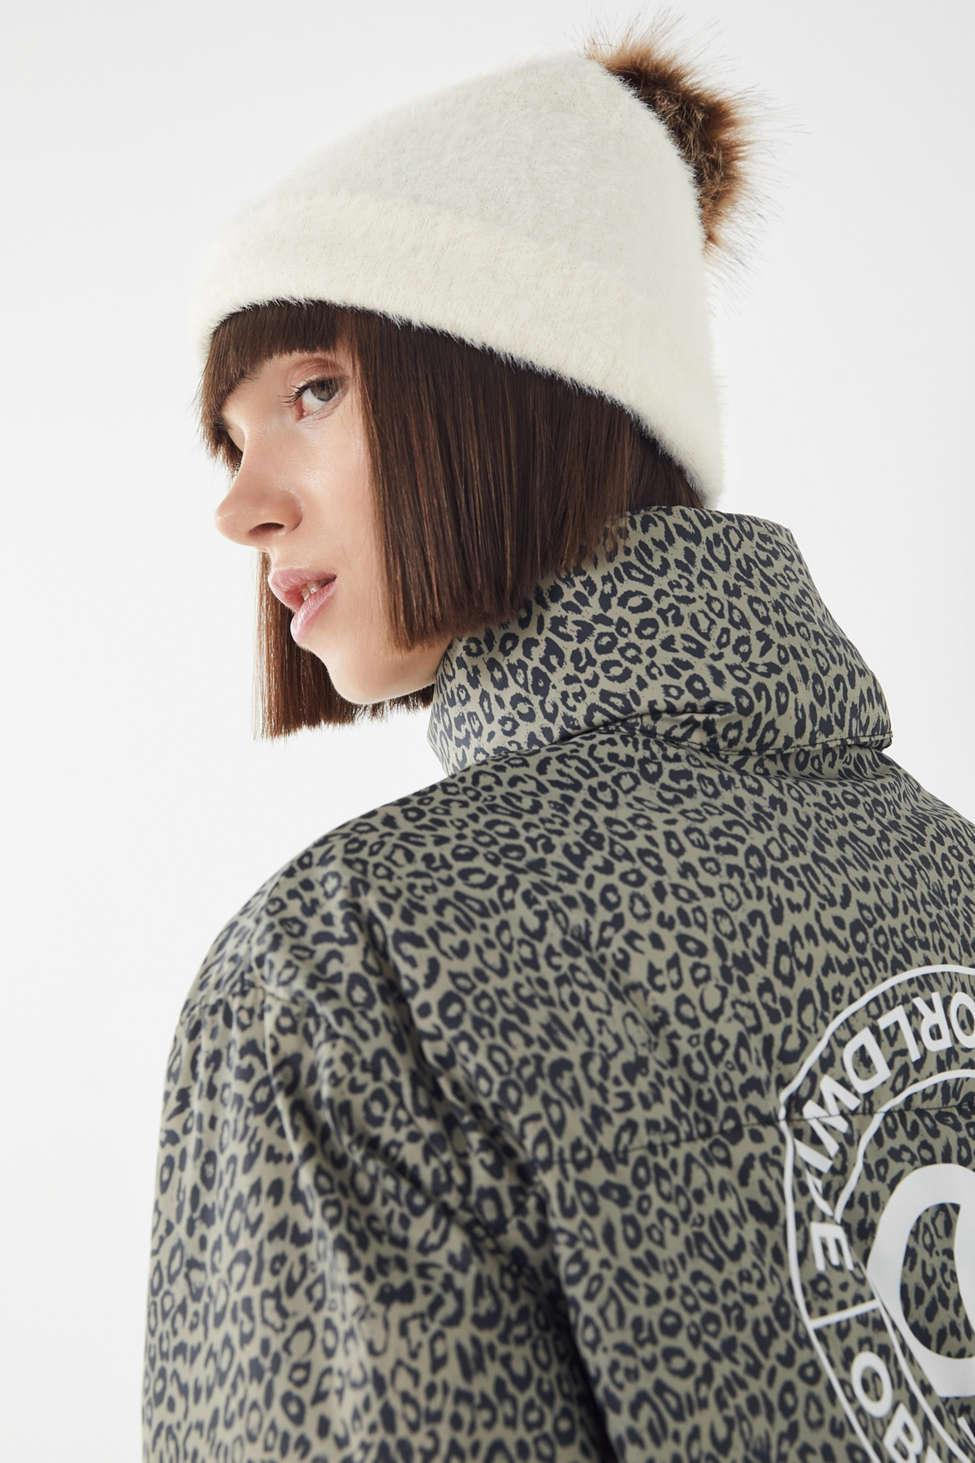 4466be942 Lyst - Urban Outfitters Fuzzy Furry Pompom Beanie in Natural